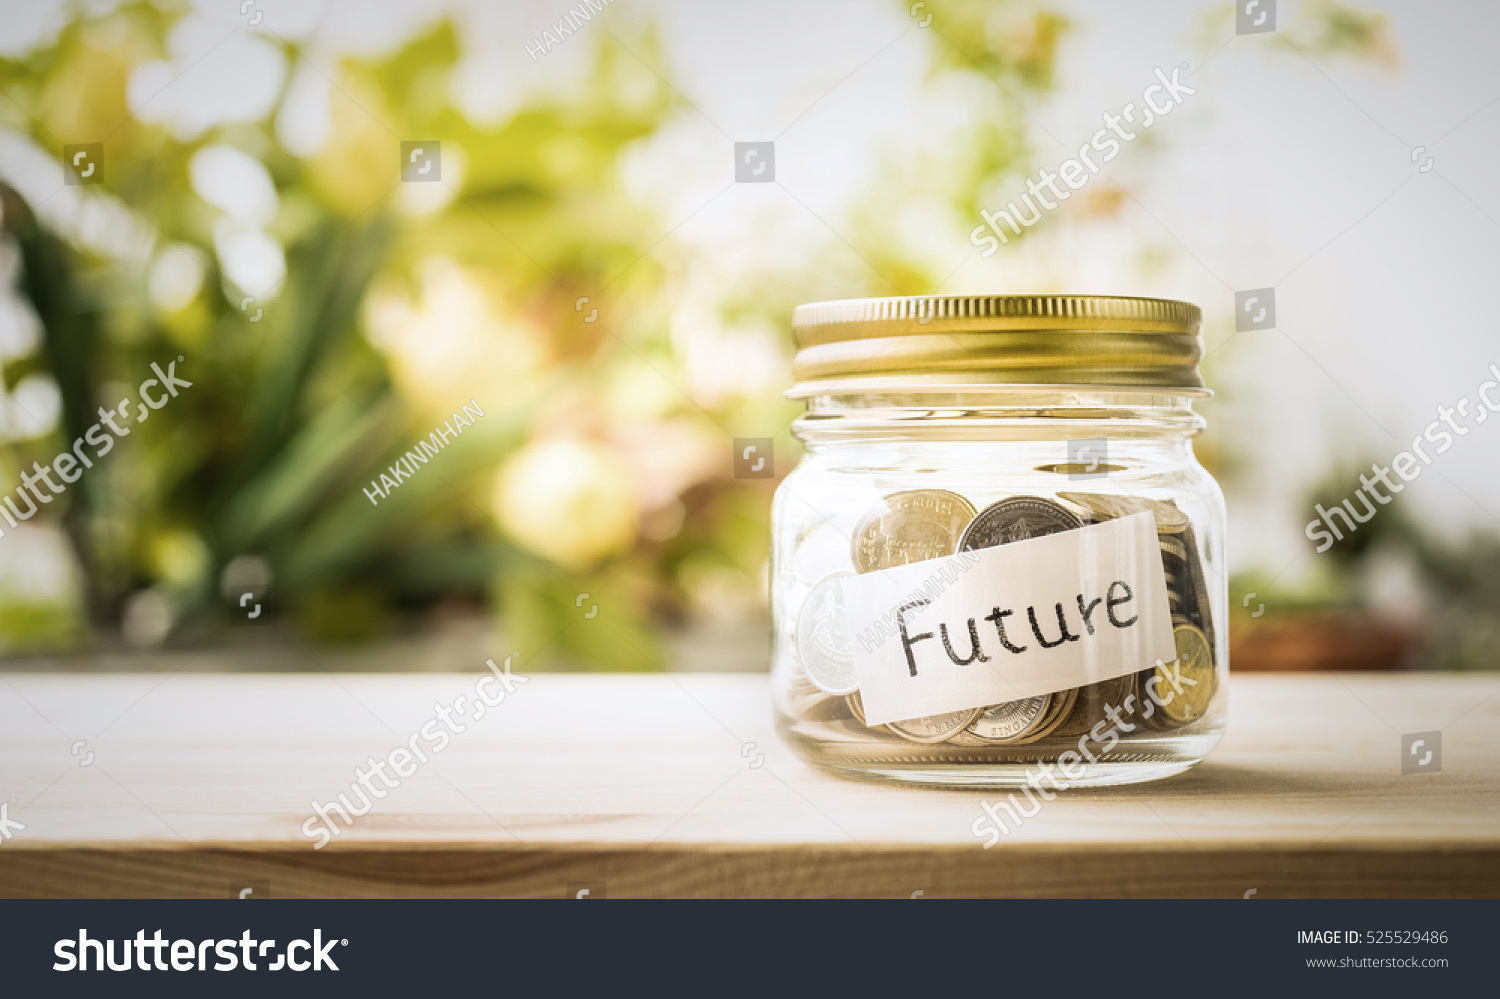 future word money coin glass jar stock photo (edit now) 525529486